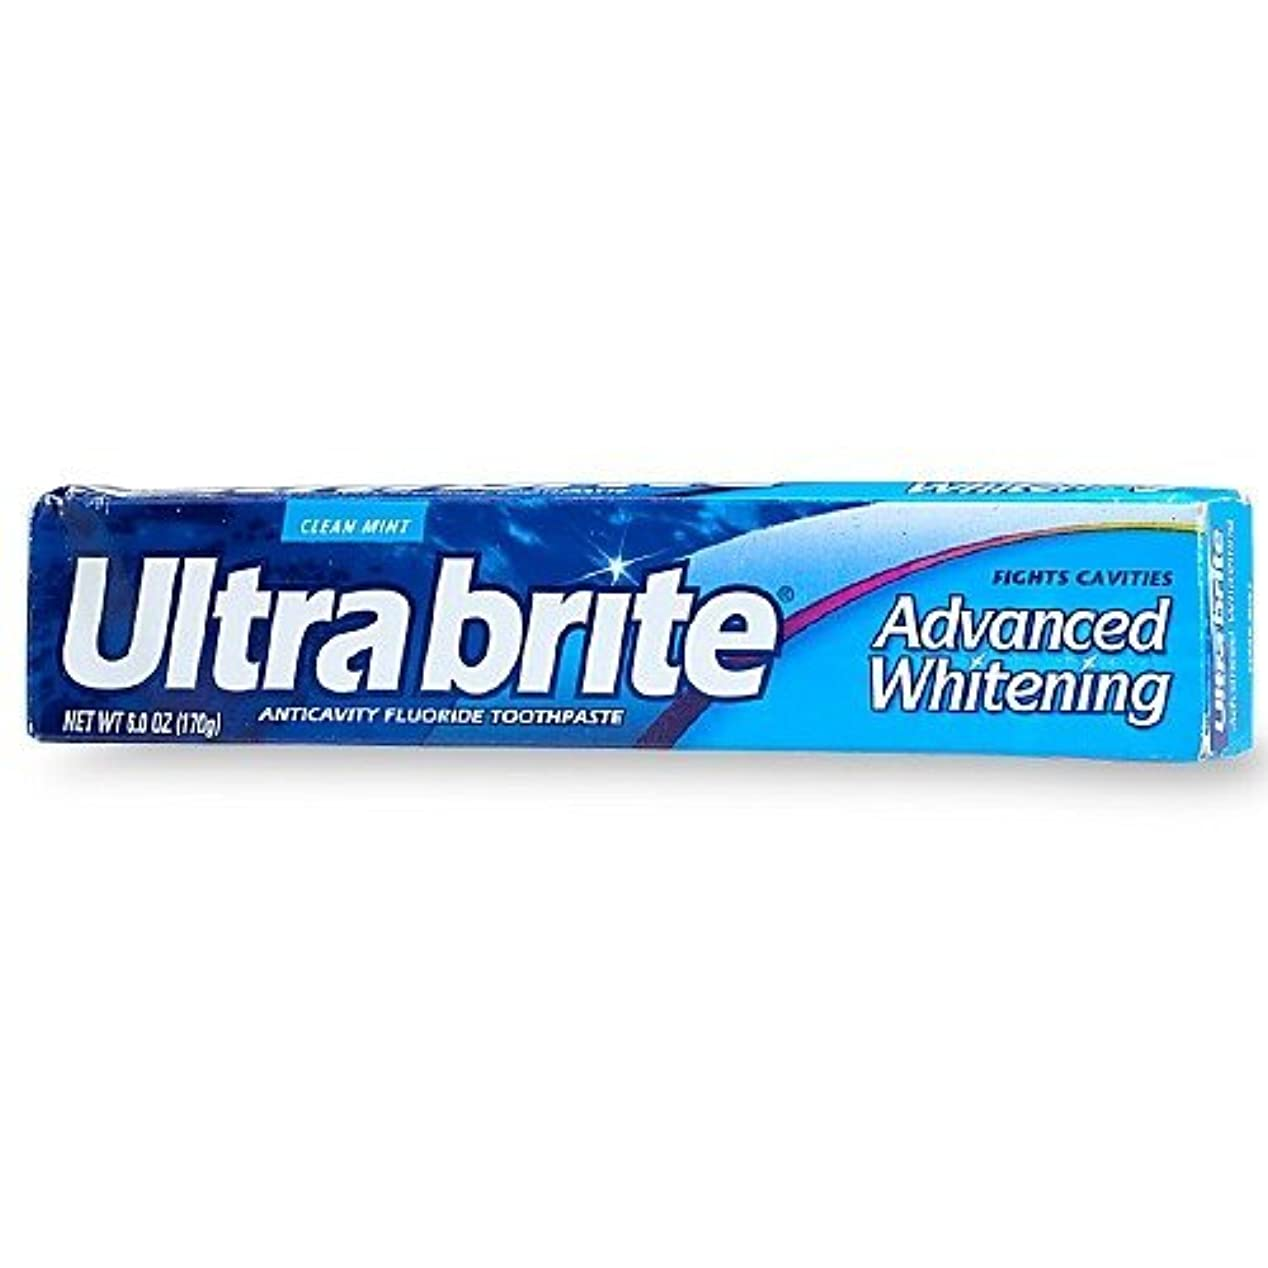 引退したアイザック雇用海外直送品Colgate Colgate Ultra Brite Advanced Whitening Fluoride Toothpaste, 6 oz (Pack of 3)